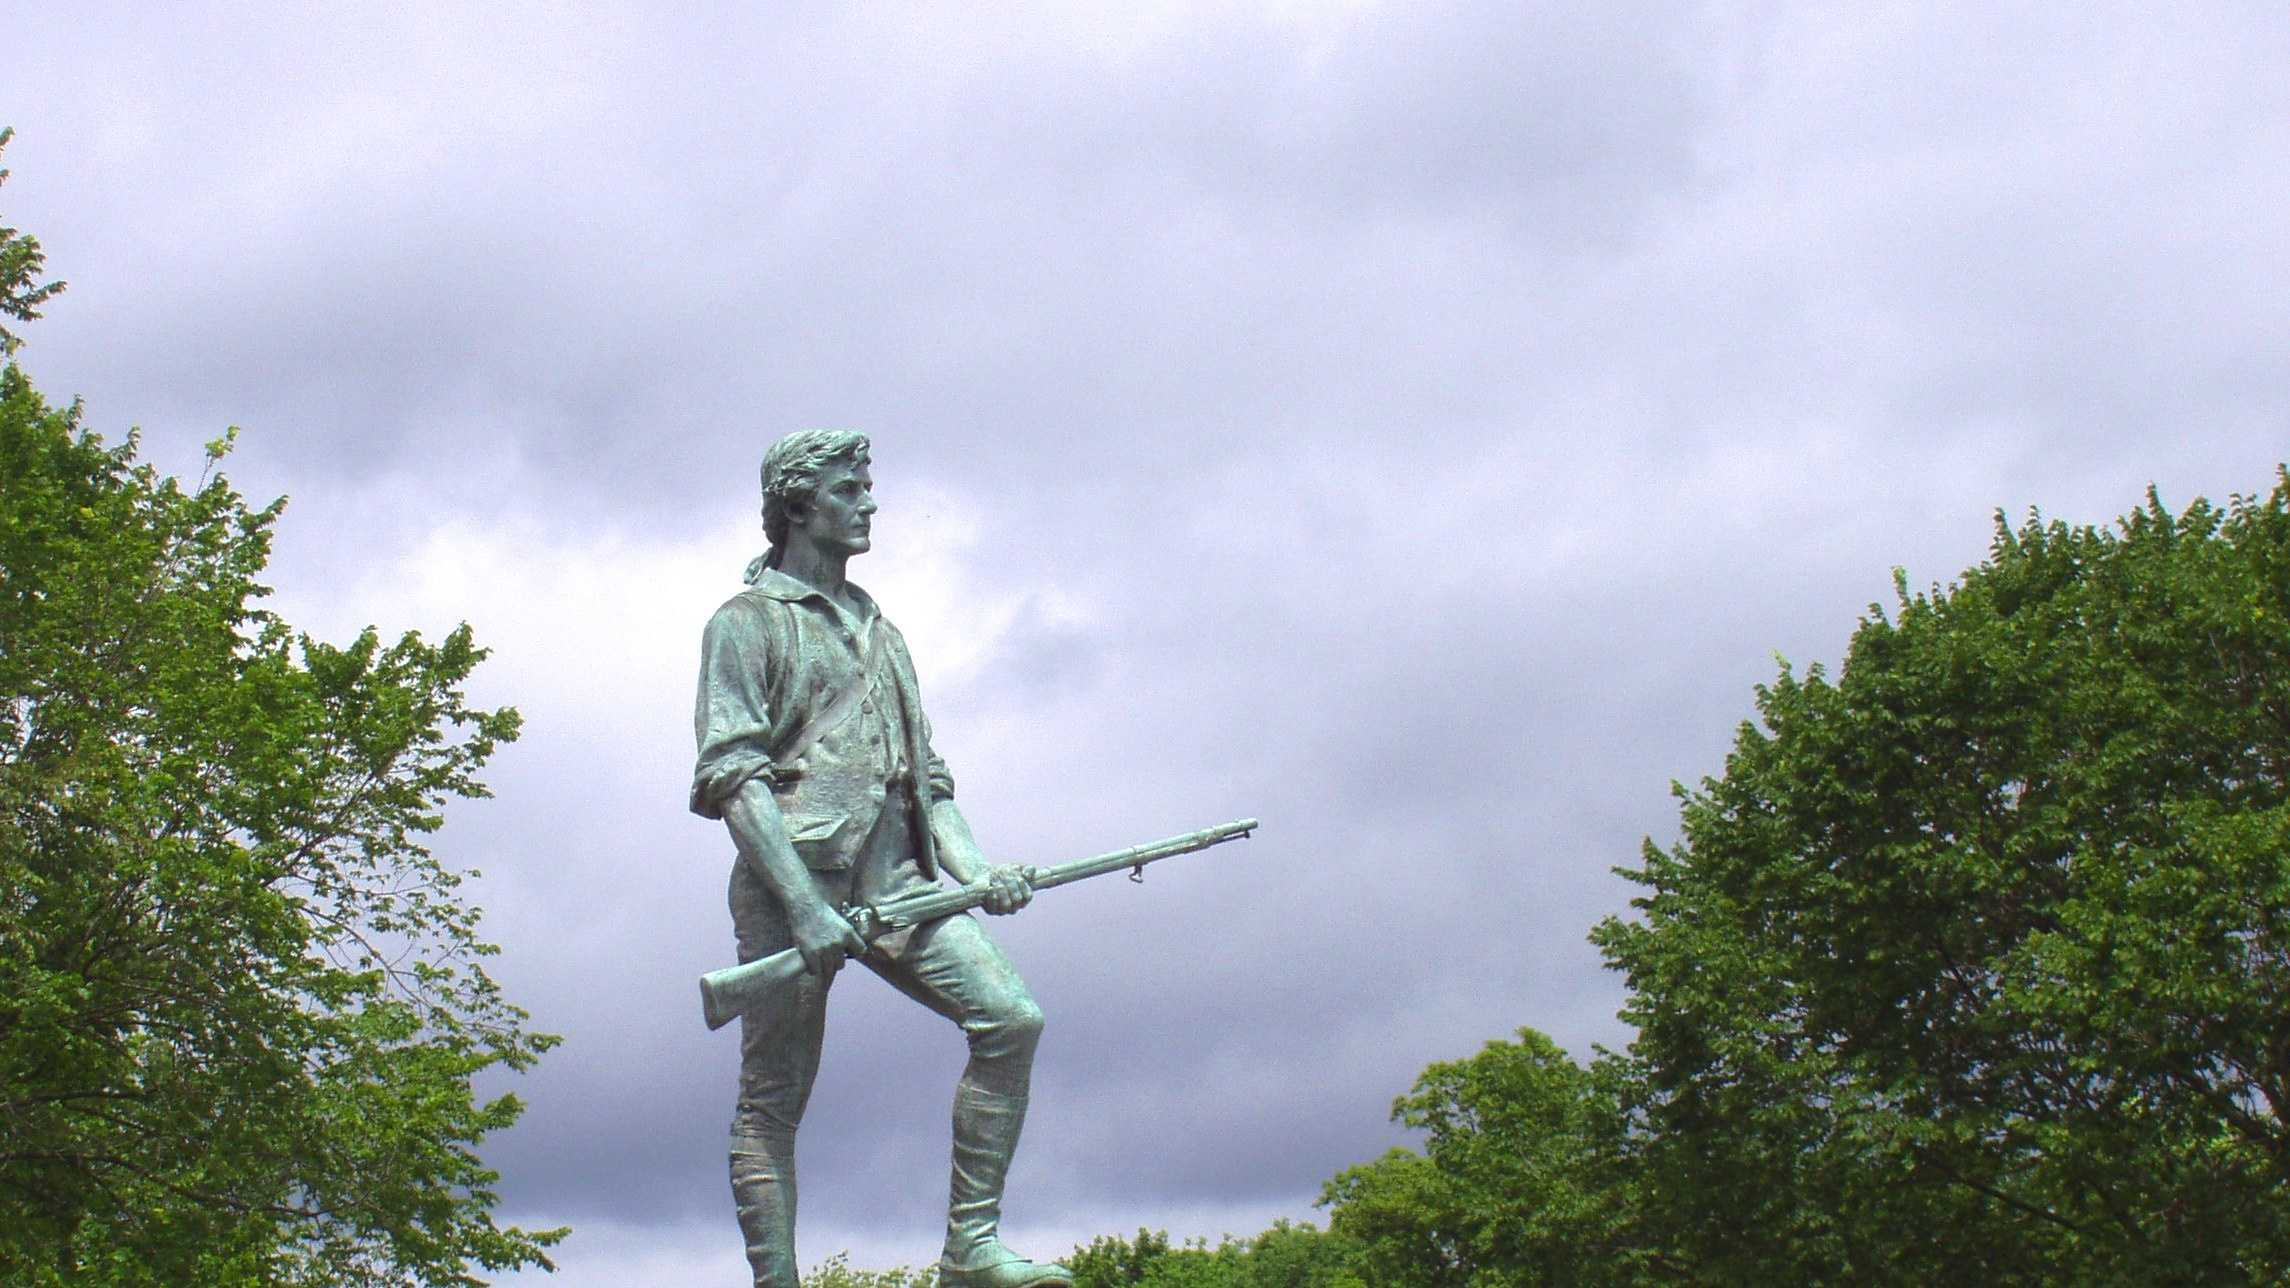 Minute_Man_Statue_Lexington_Massachusetts.jpg